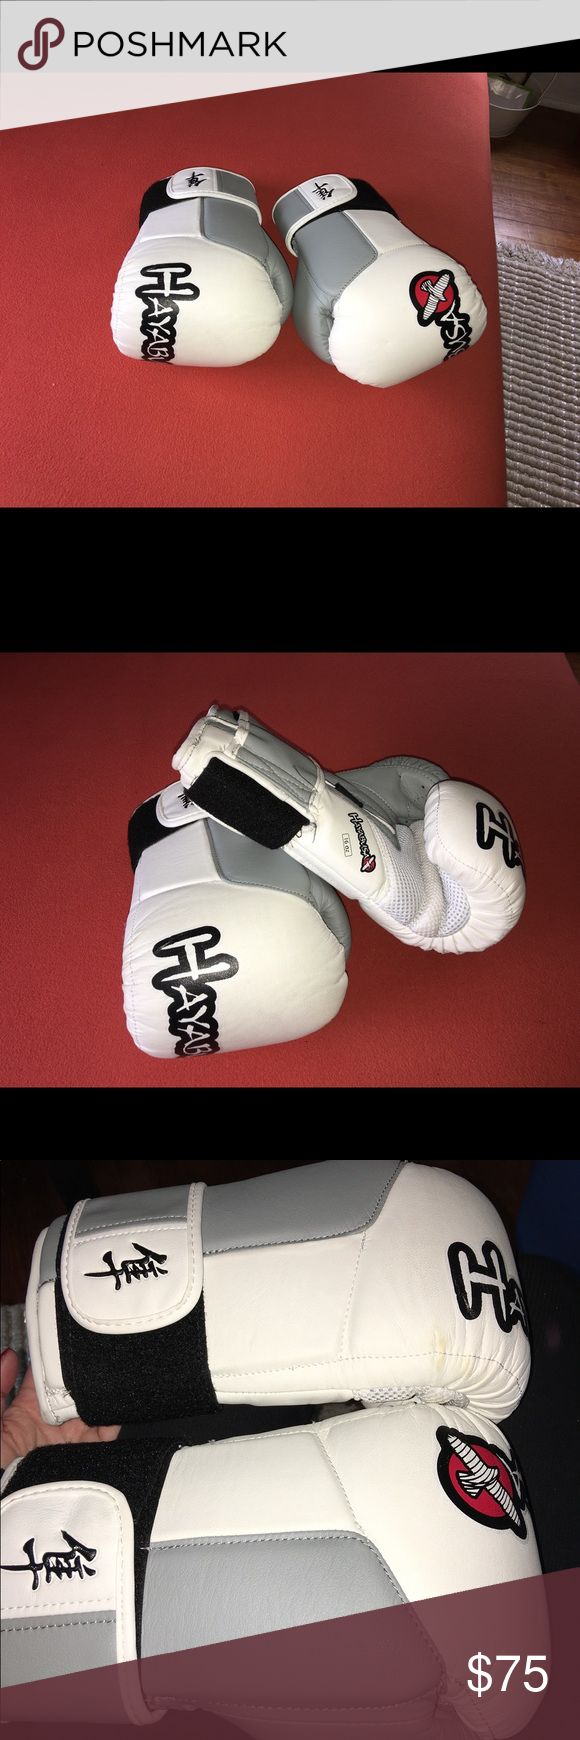 Professional boxing gloves 16 oz. Professional white boxing gloves, like new. 9/10 Other